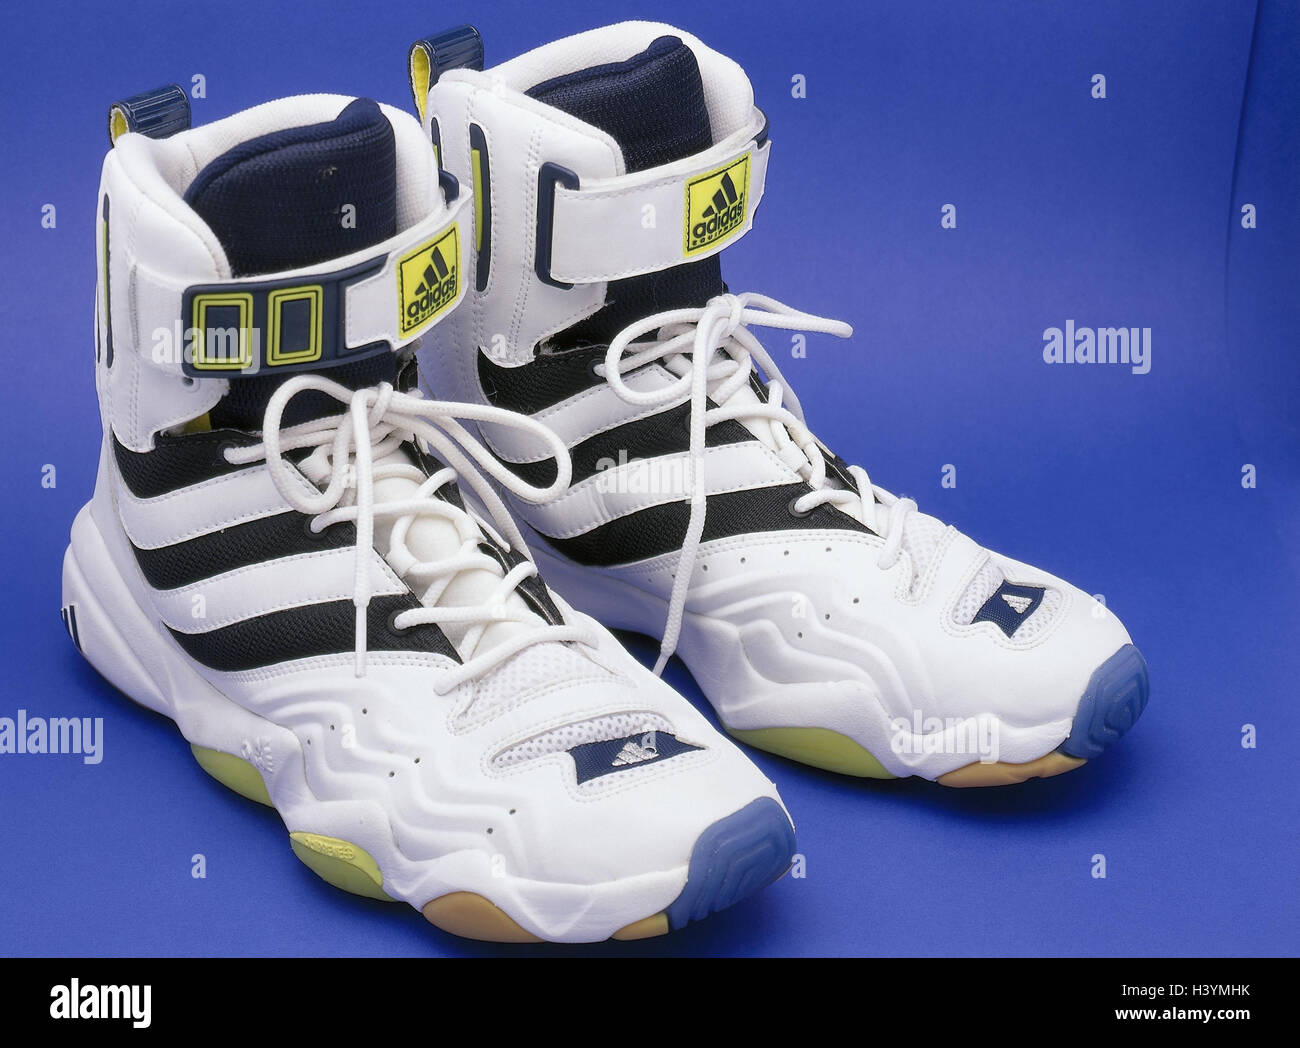 Sports shoes, sneakers, volleyball